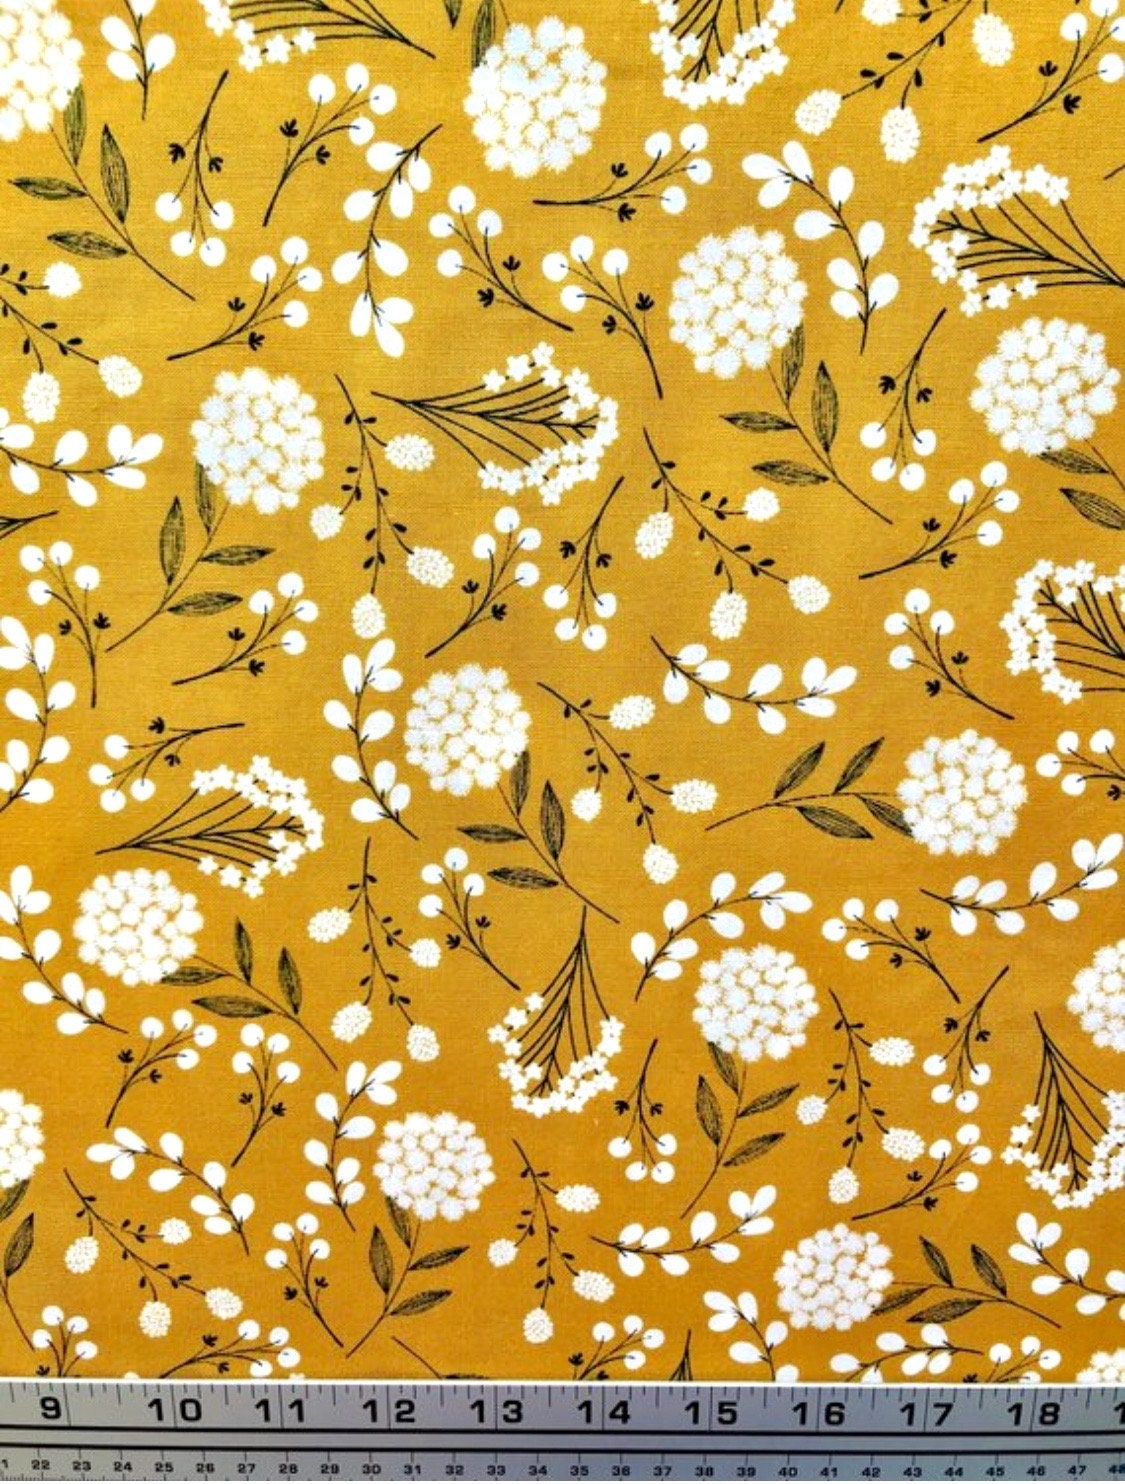 Modern Yellow Flowers Fabric Mustard Floral Fabric Wild Etsy